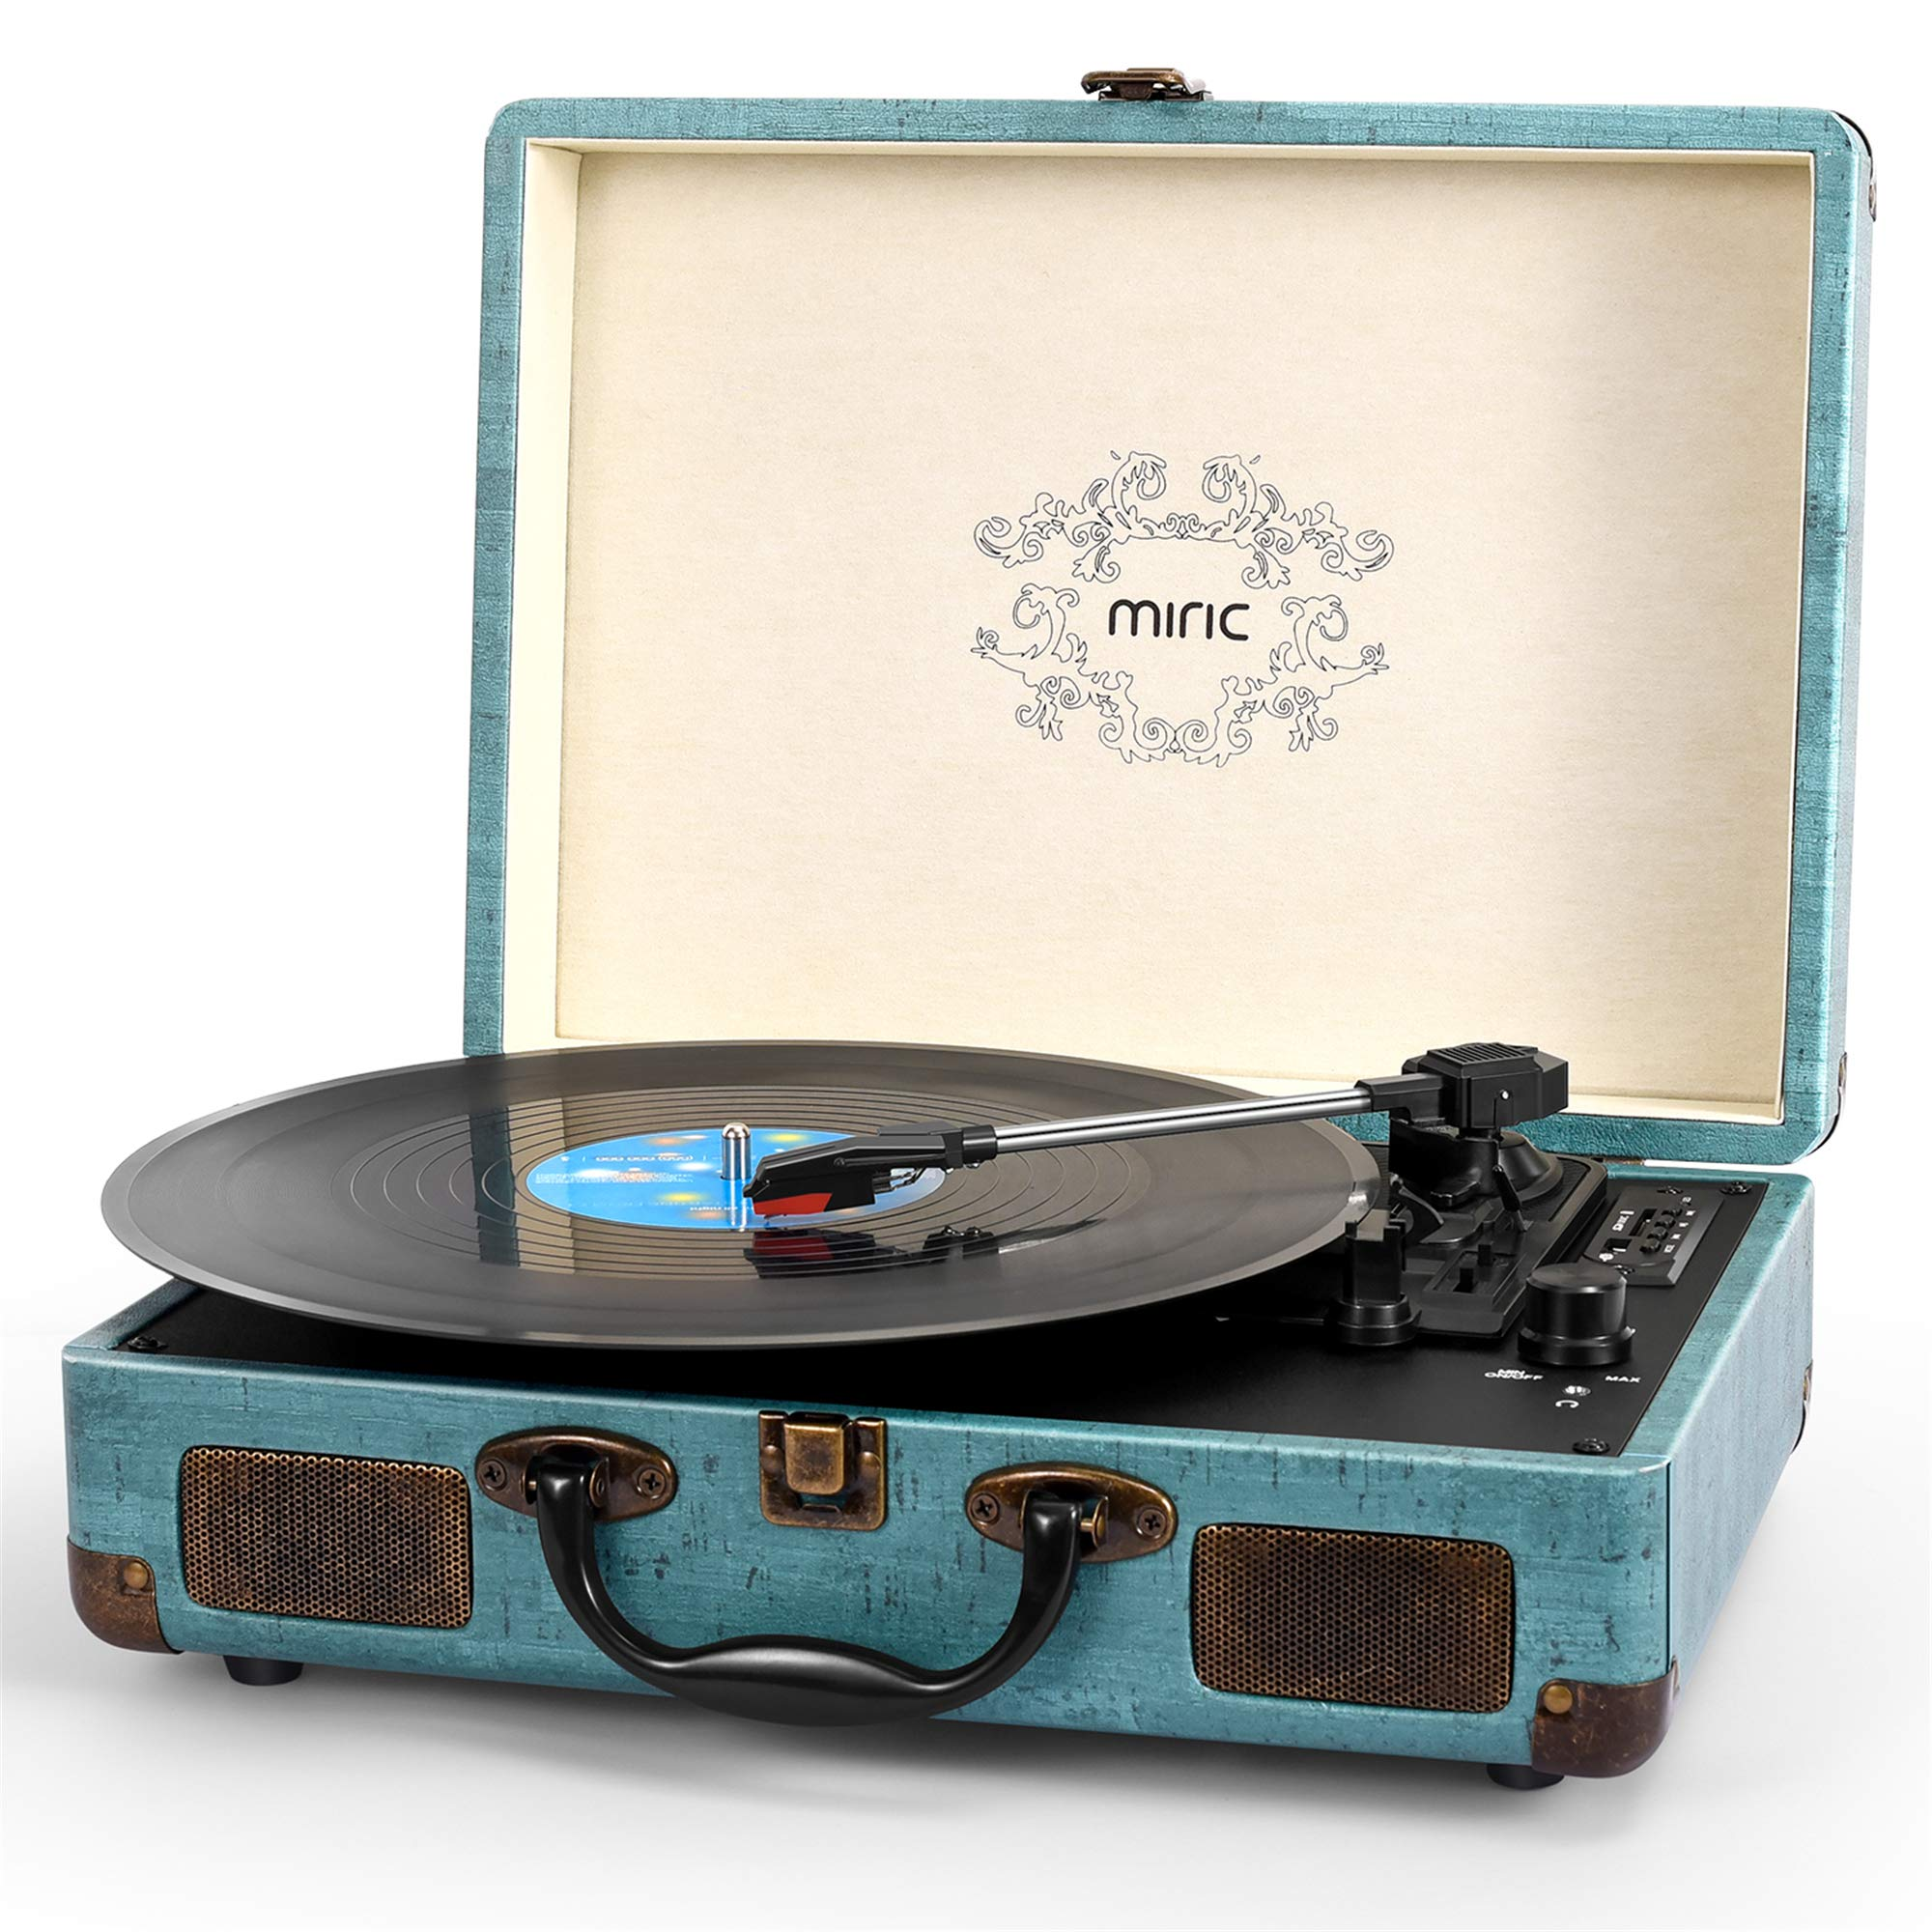 Record Player, Miric Bluetooth Turntable with 2 Built-in Speakers, Portable Size, 3-Speed, for 7/10/12inch Vinyl Records, Equipped USB/SD/AUX Port, Support Transcription, Suitcase Design